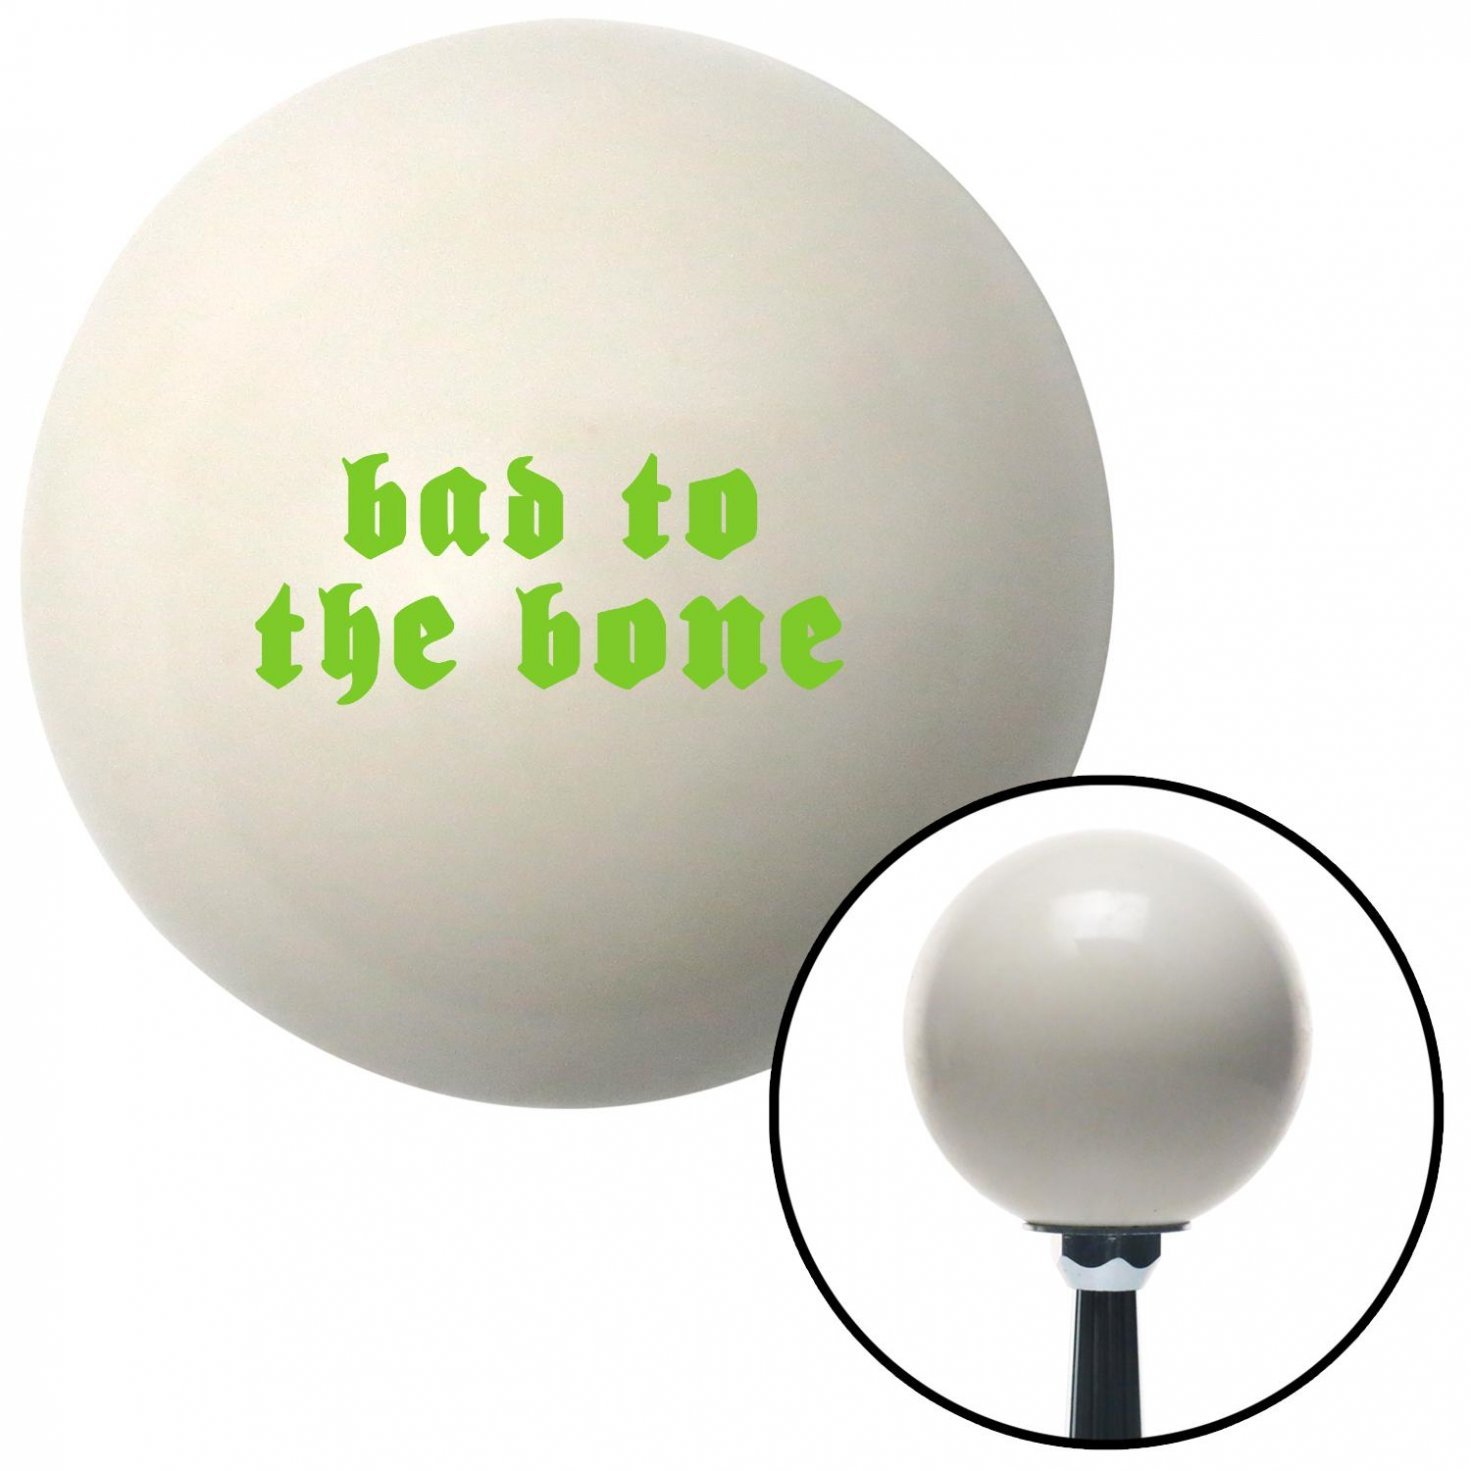 American Shifter 34269 Ivory Shift Knob with 16mm x 1.5 Insert Green Bad to The Bone